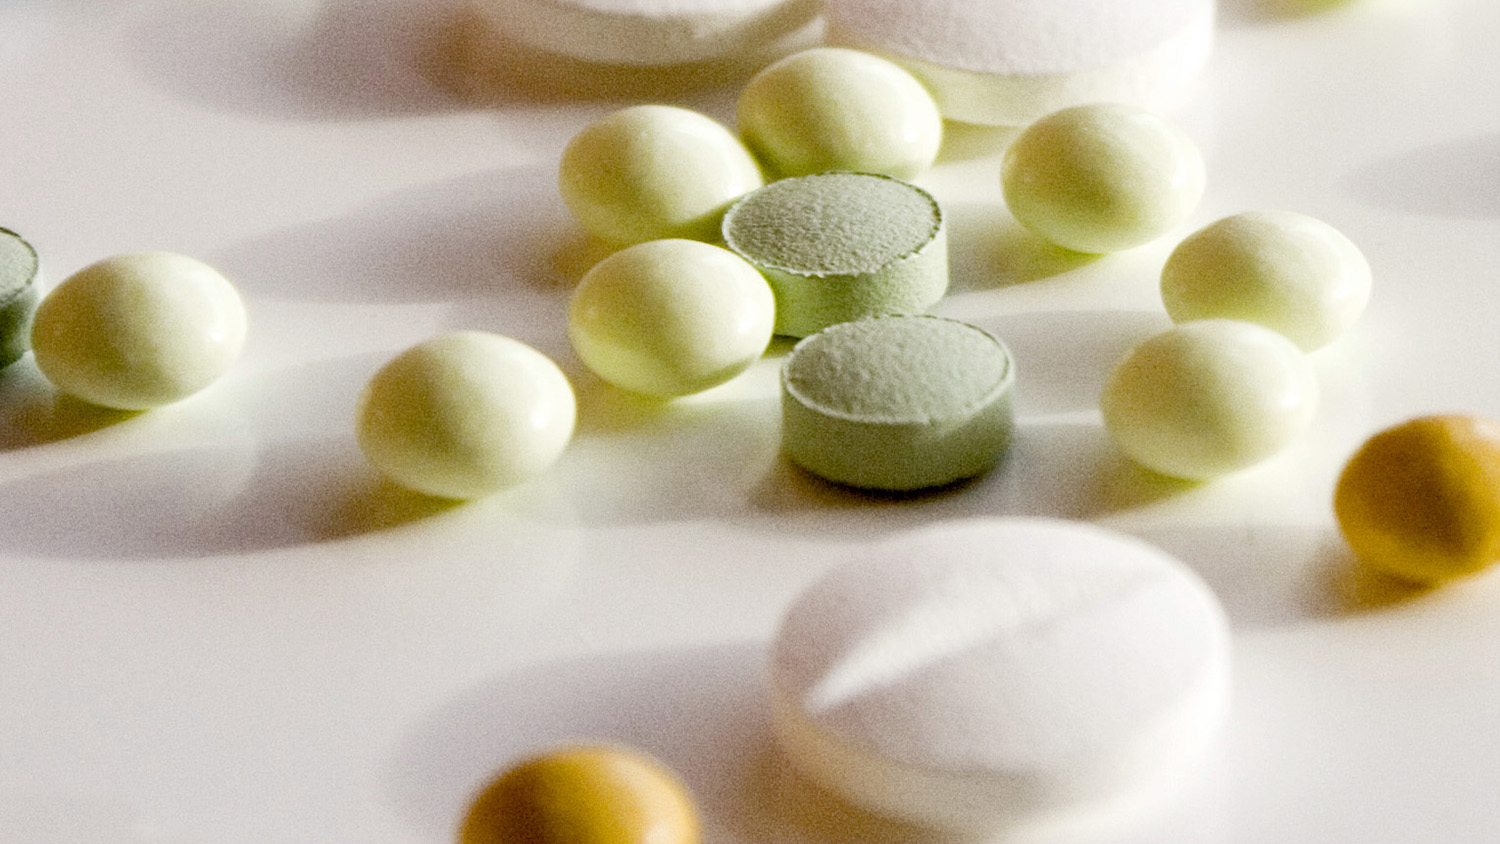 An assortment of pills sit on a white table